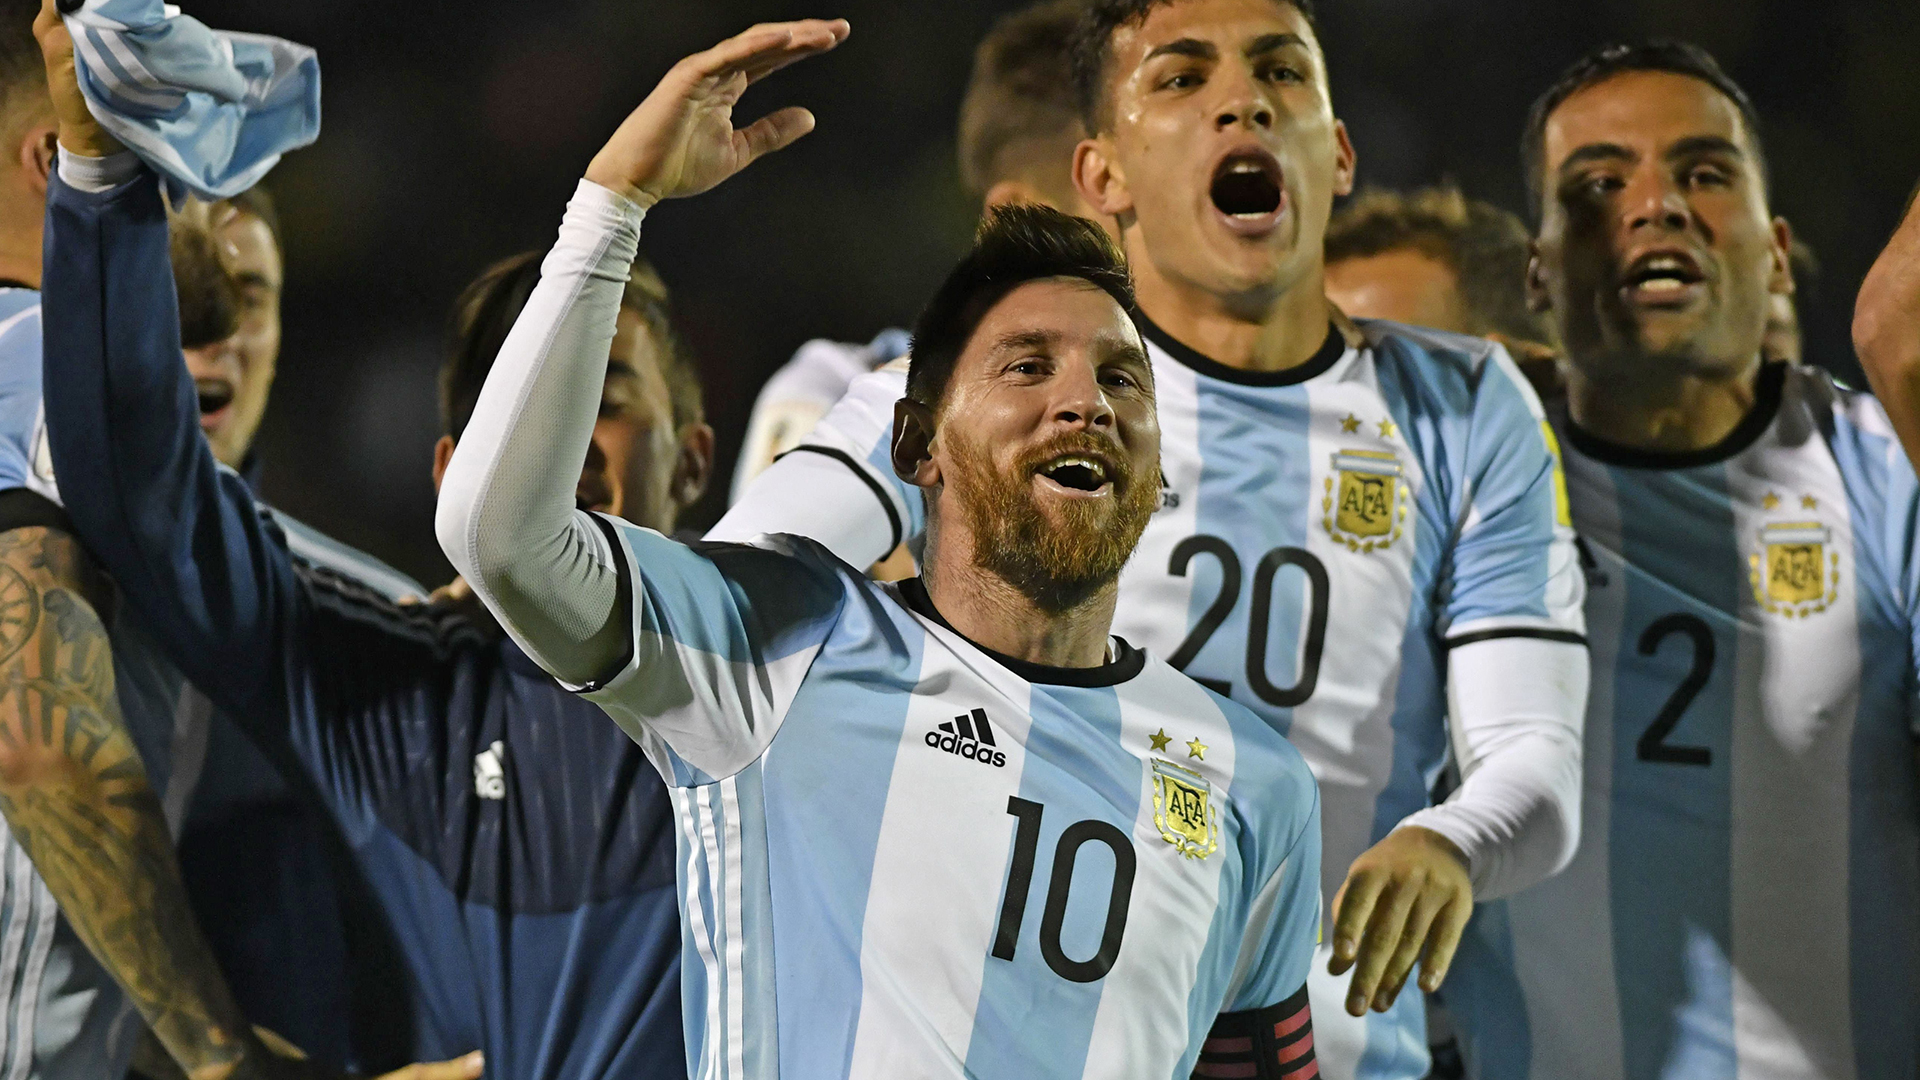 Argentina Vs Iceland 2018 World Cup , HD Wallpaper & Backgrounds